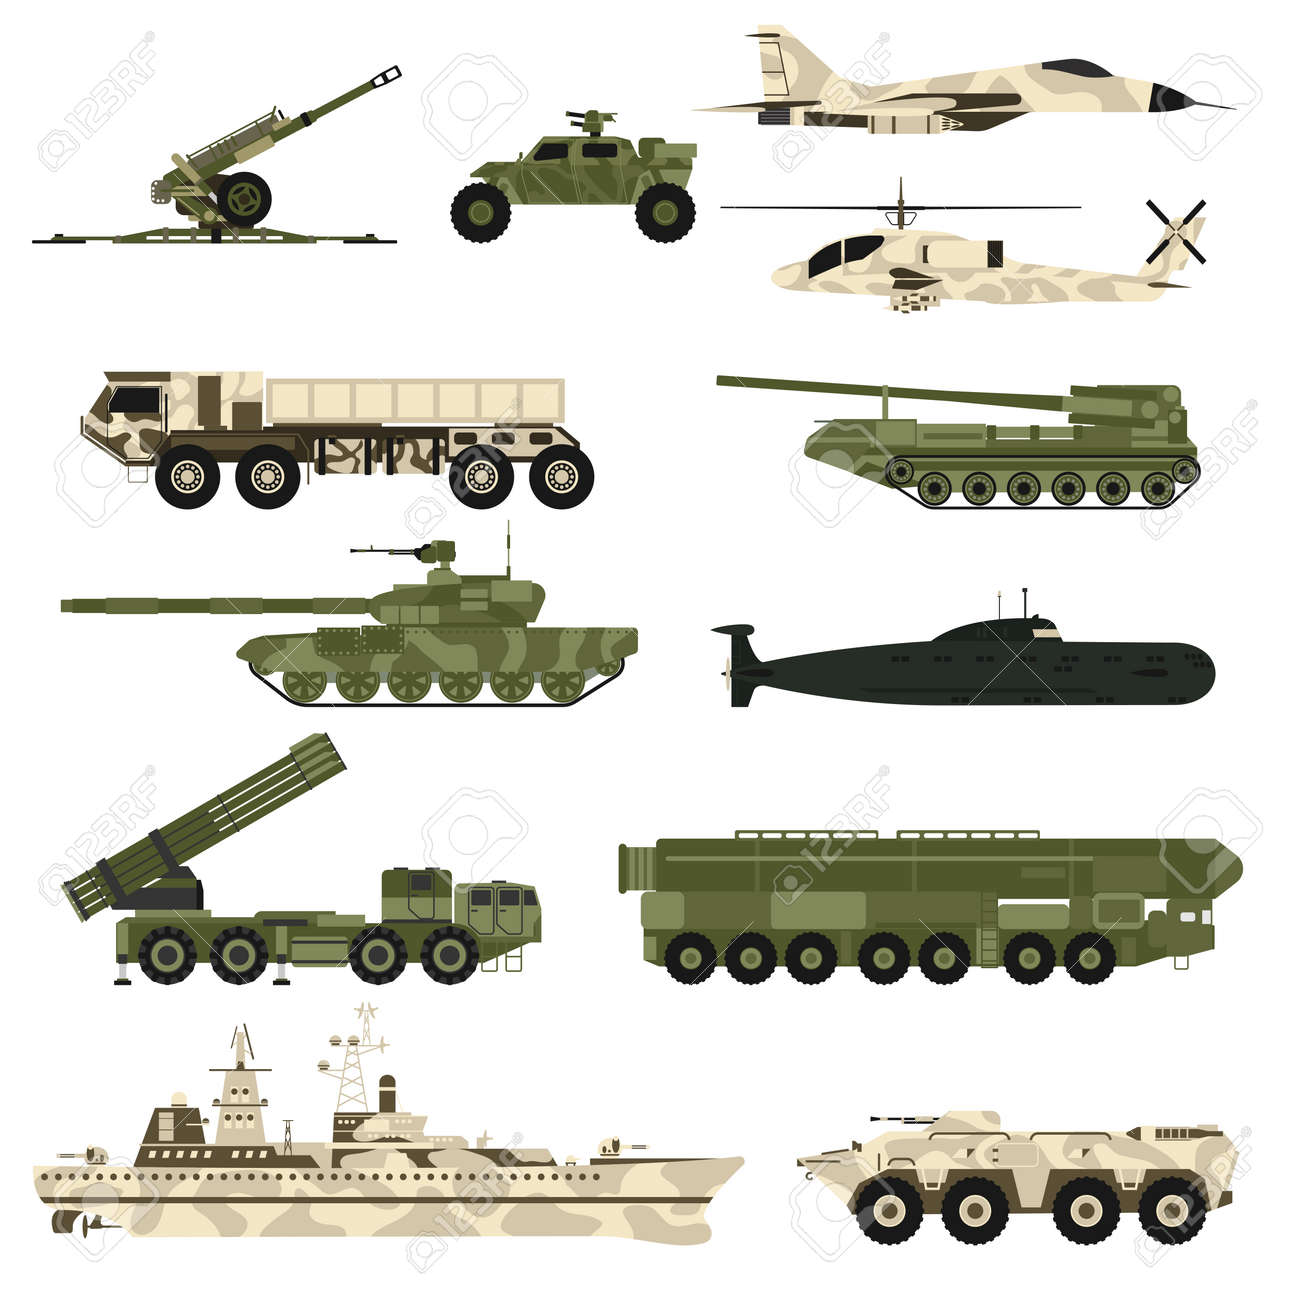 Military technic army, war tanks and military industry technic armor tanks set. Military technic and armor tanks, helicopter, hurricane, missile systems, submarine, armored personnel carriers vector. - 54707460